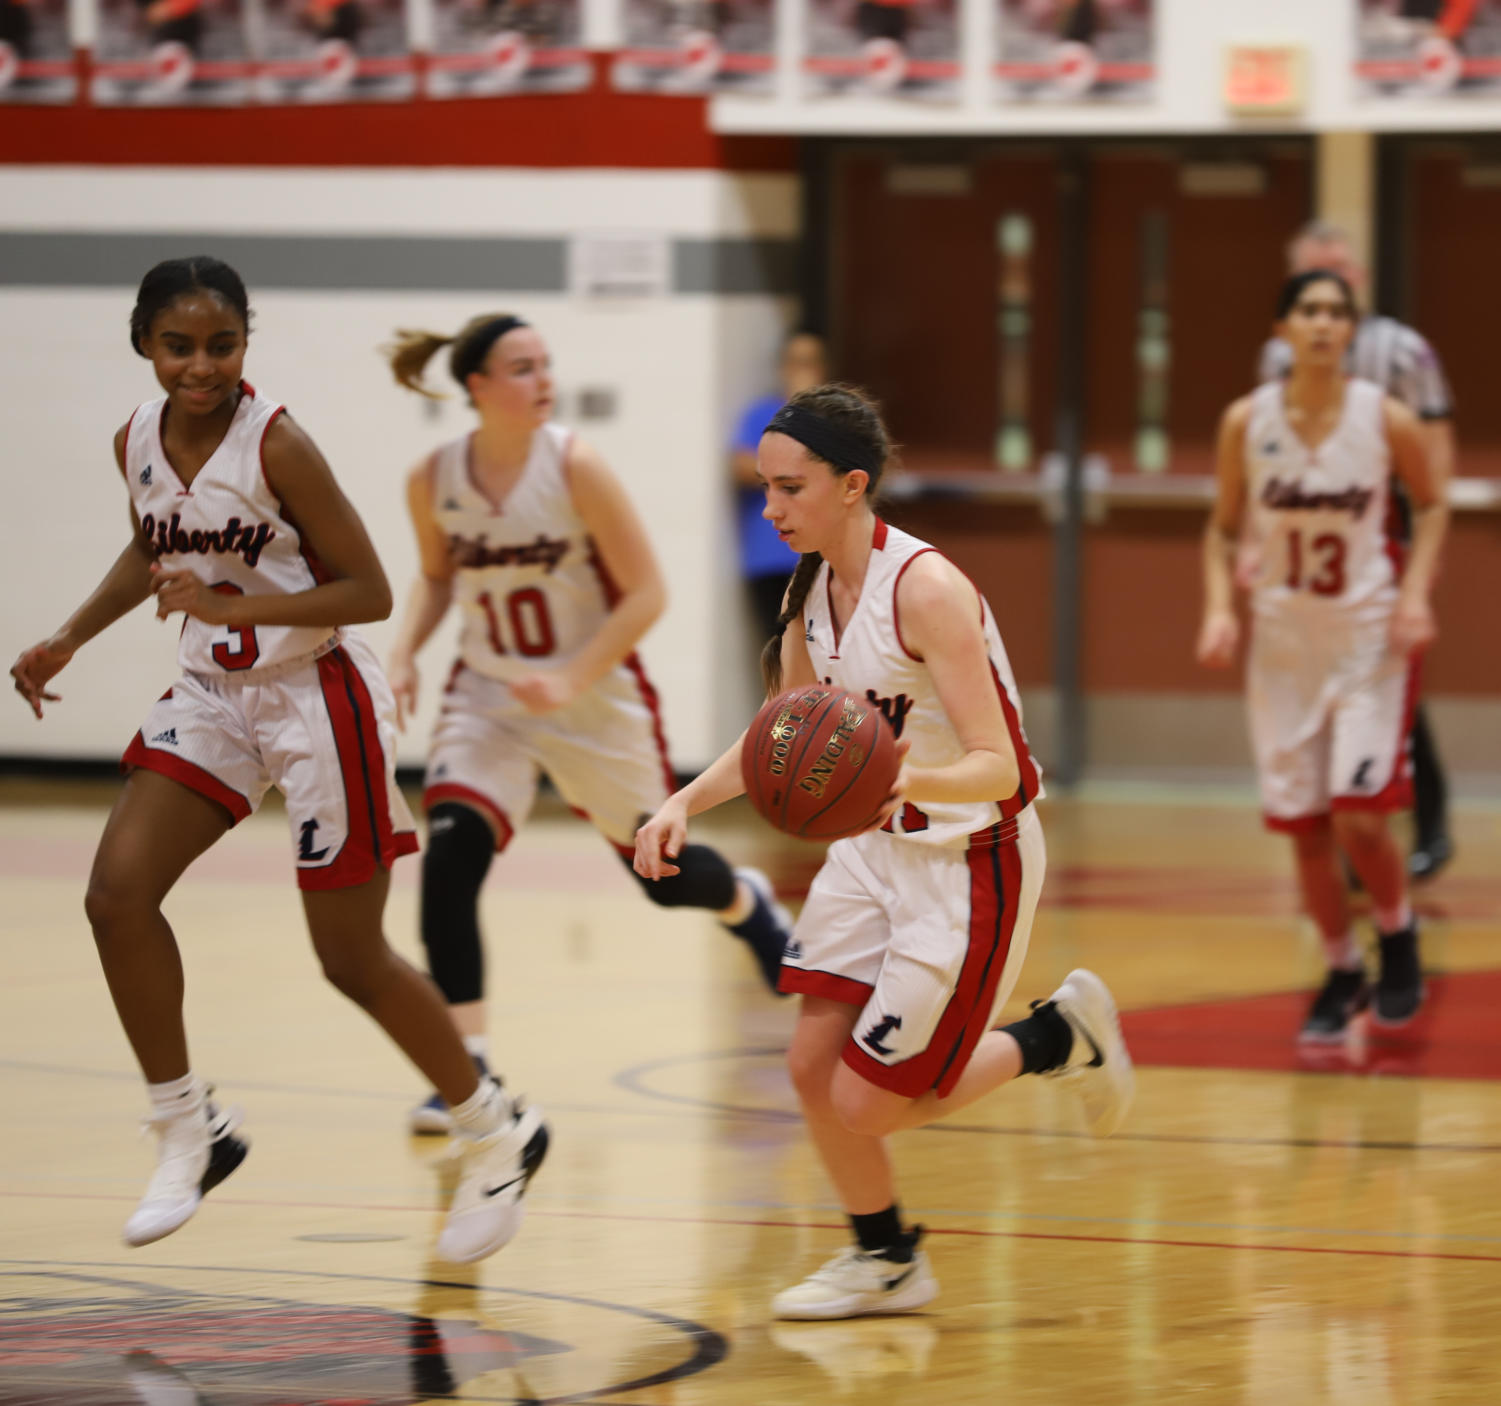 Sara Gordley dribbles down the court in a game at the Warrenton Tournament.